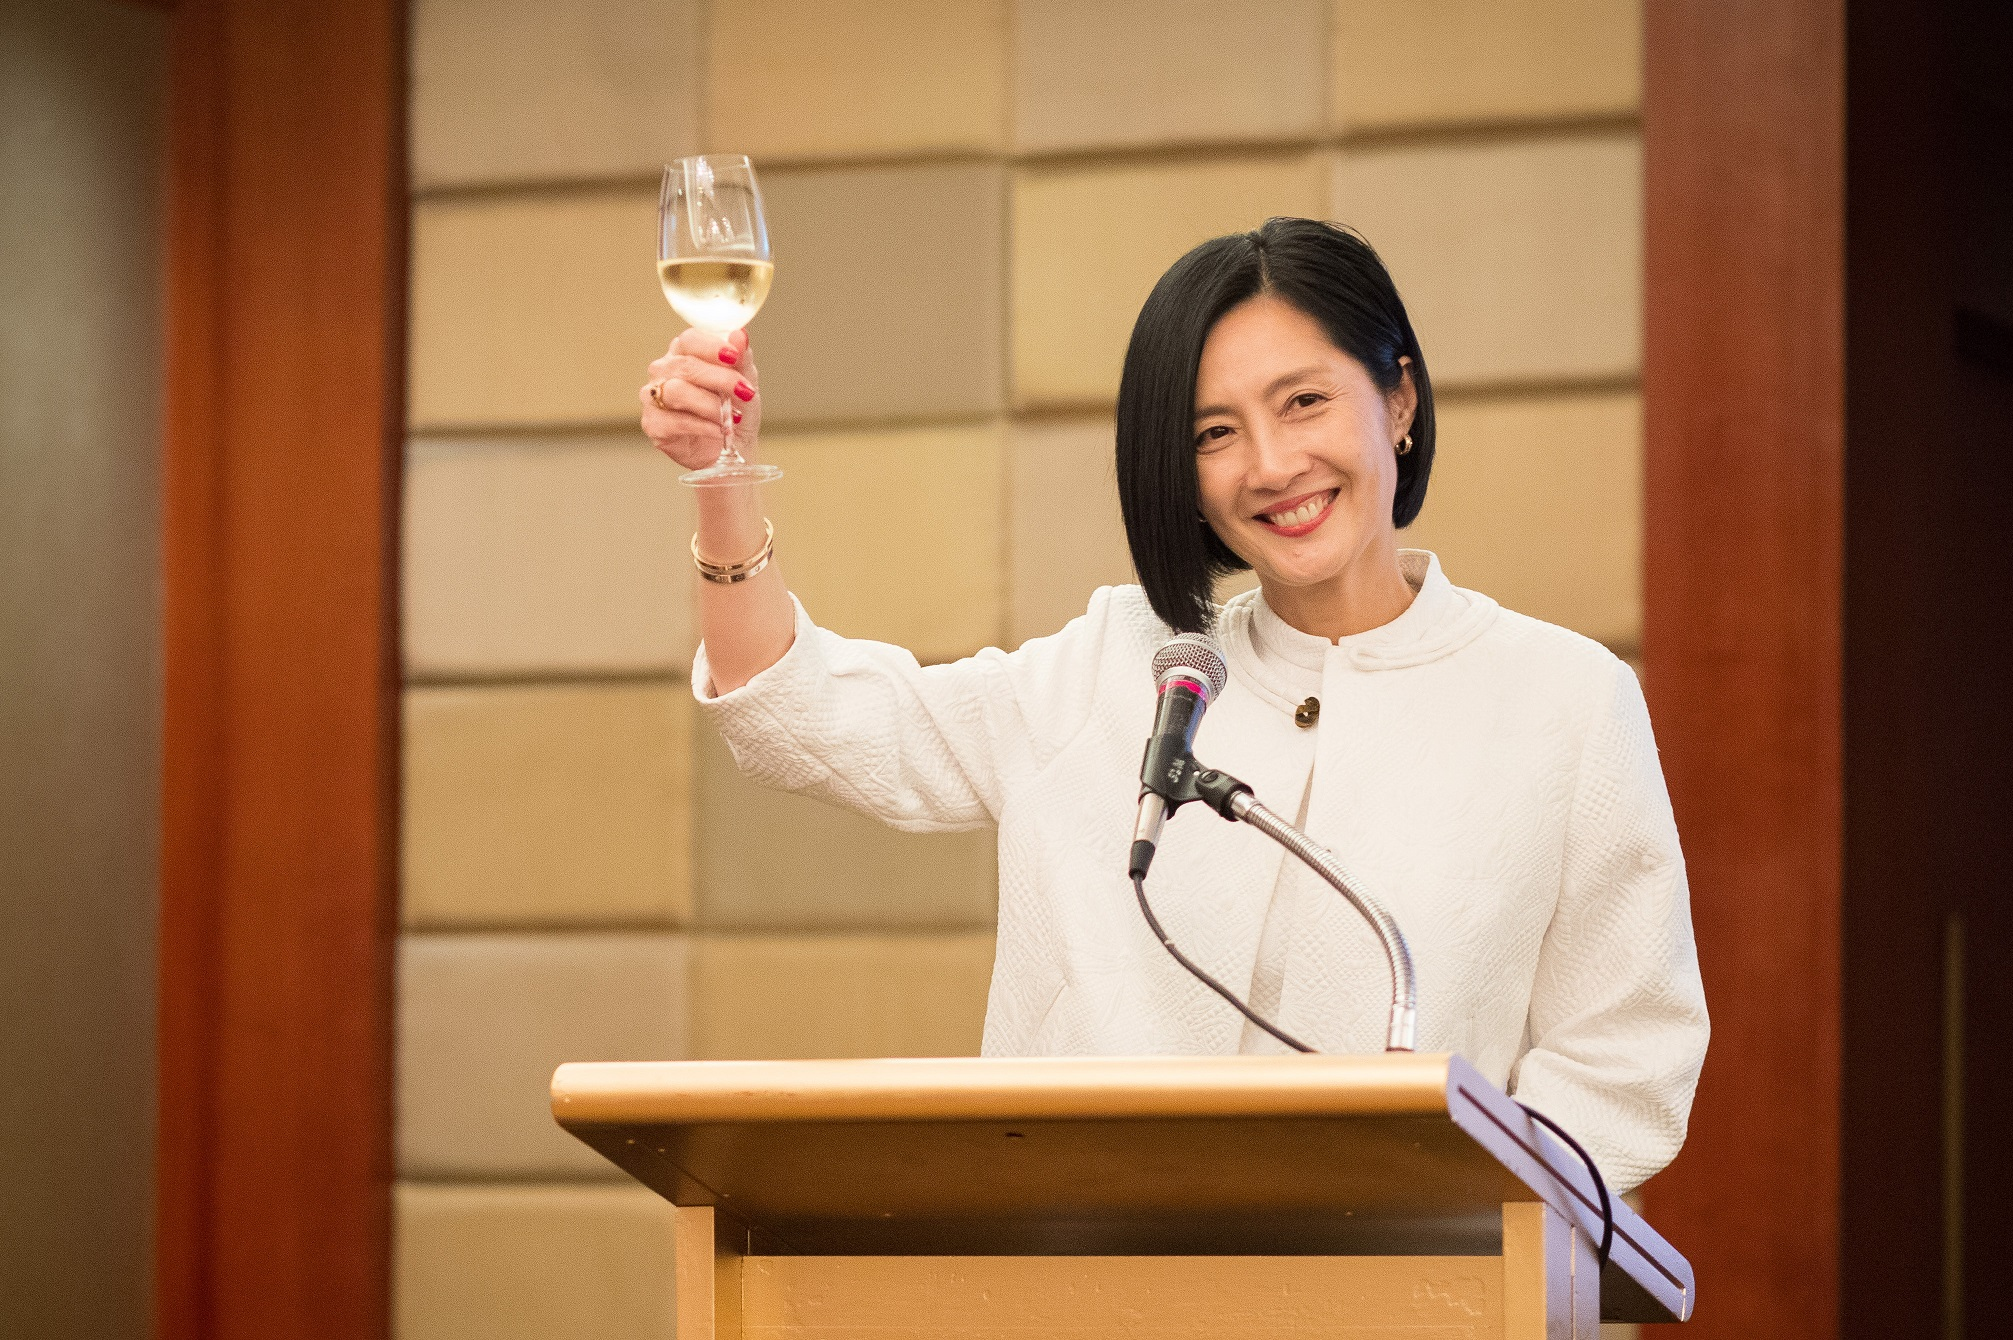 President and Dean Dr. Jikyeong Kang toasts the dinner guests